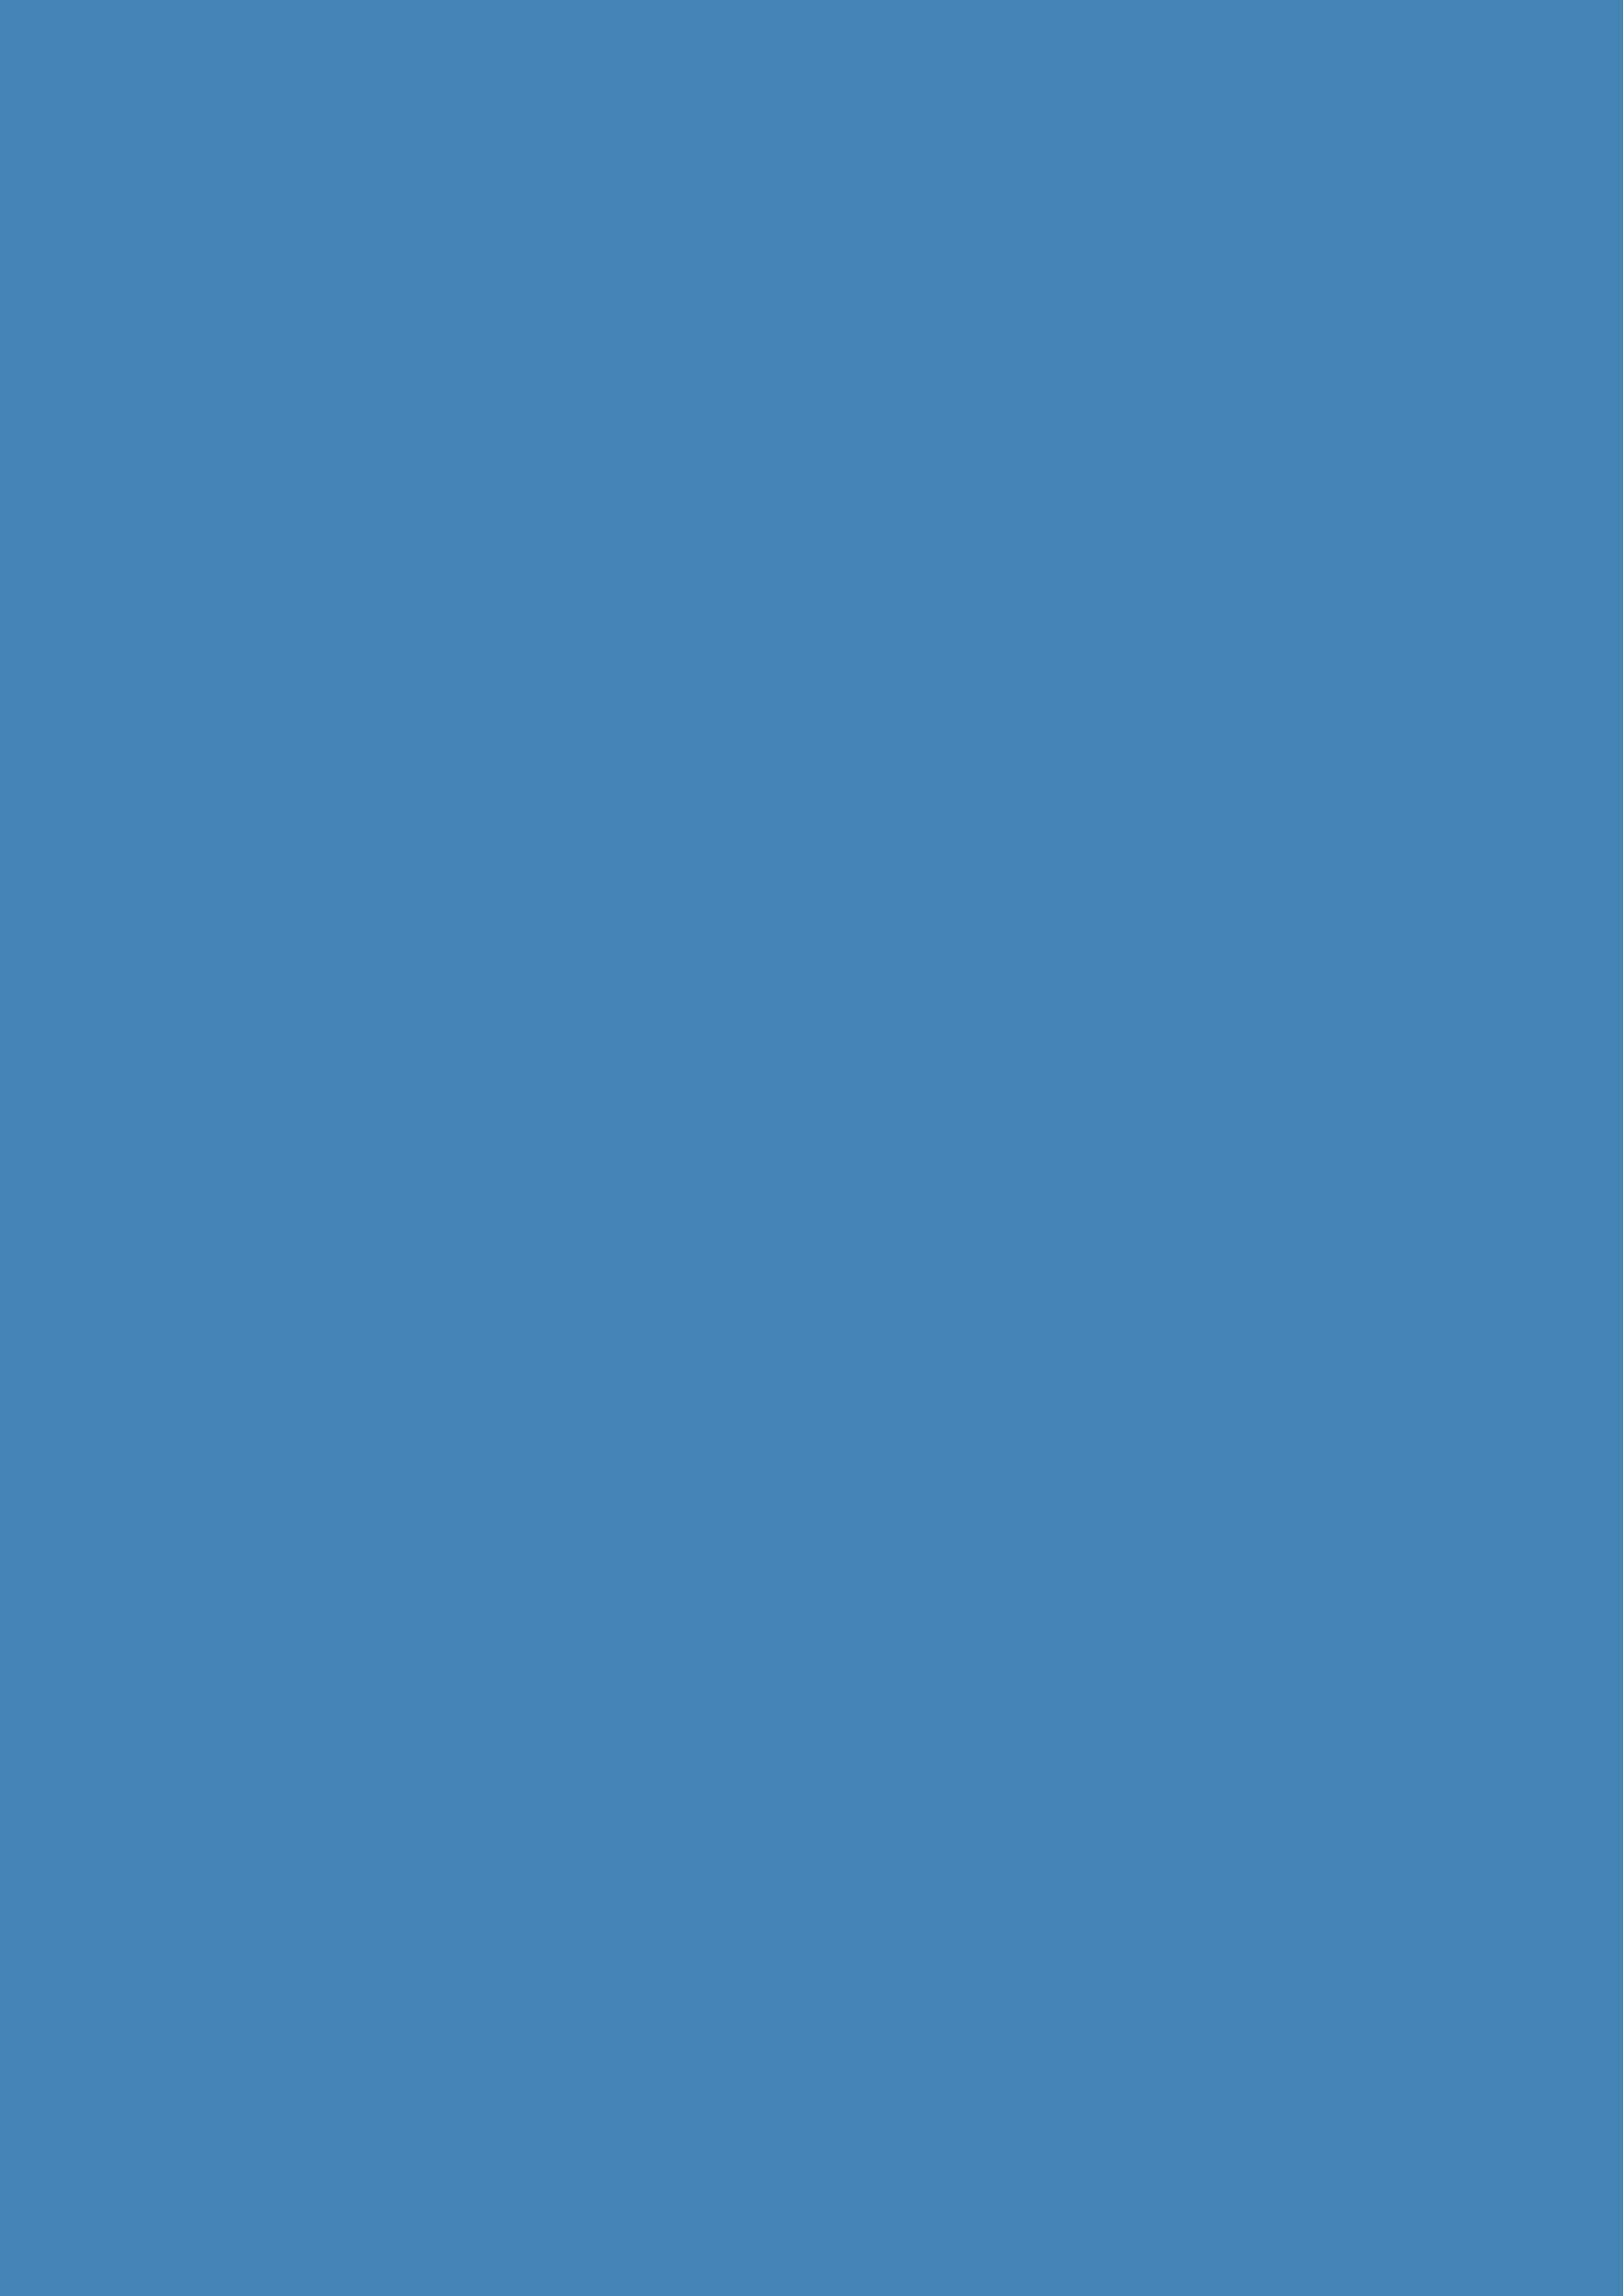 2480x3508 Steel Blue Solid Color Background